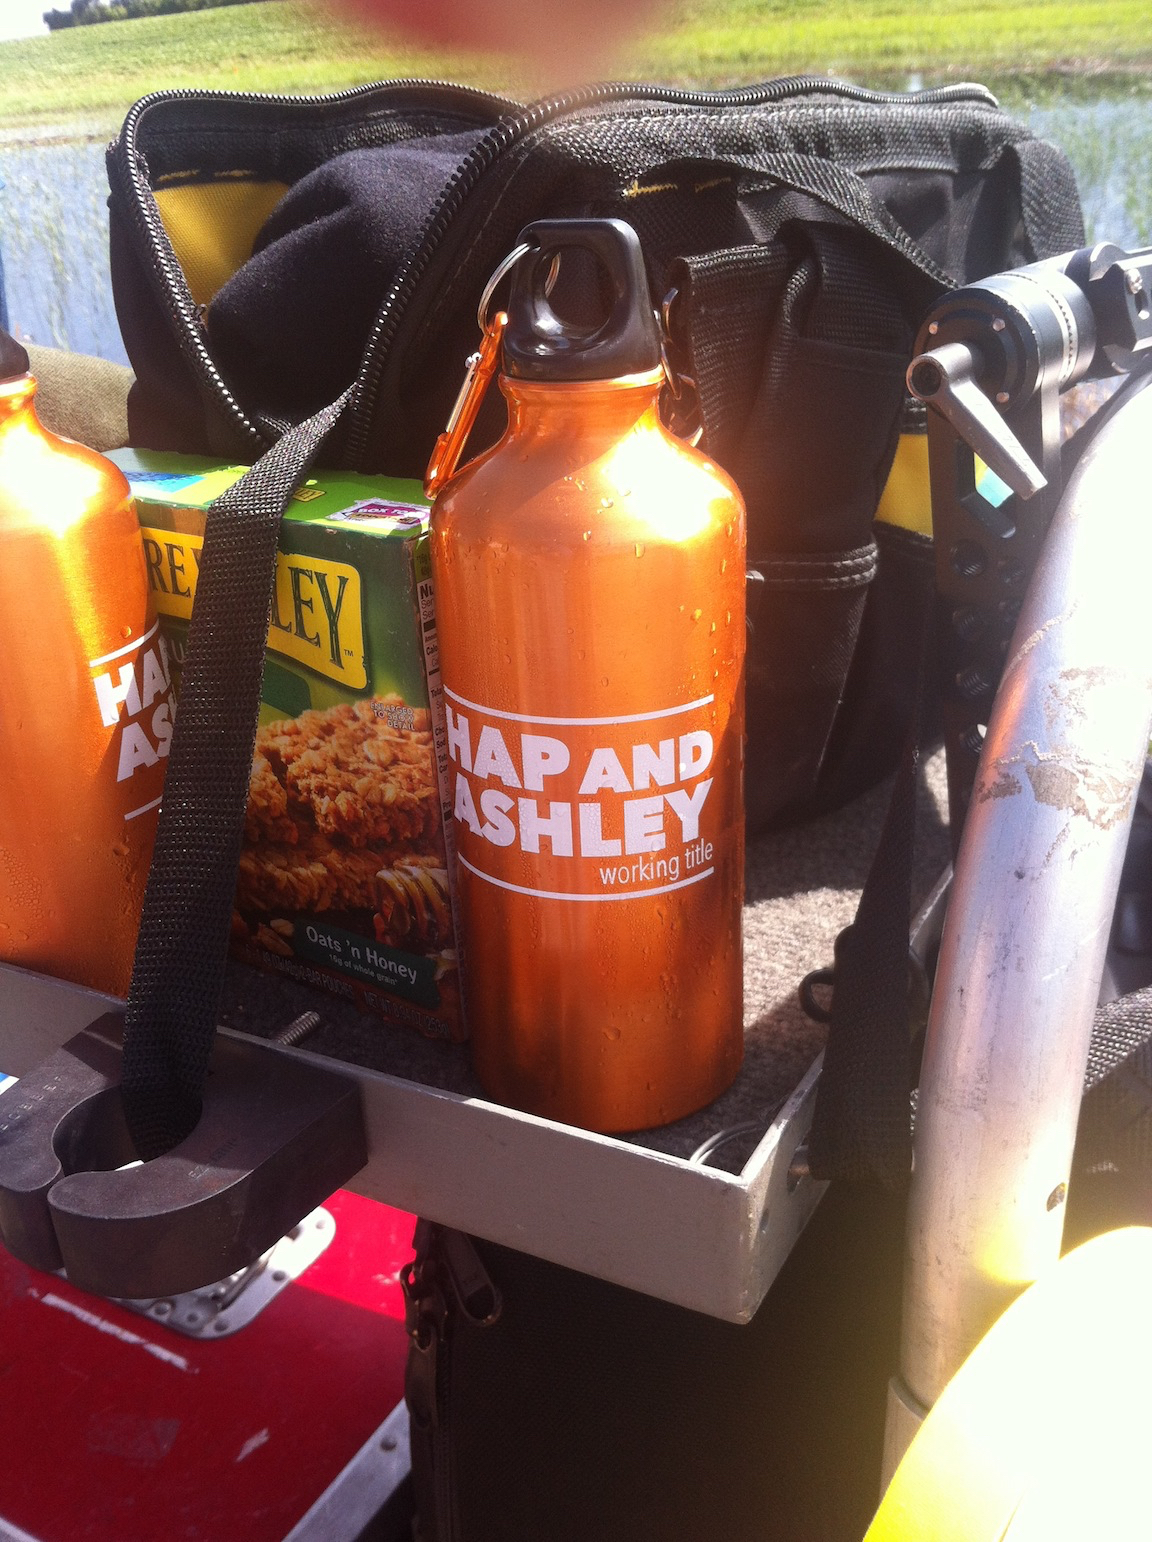 The crew doesn't come to the set without their Hap and Ashley water bottles!